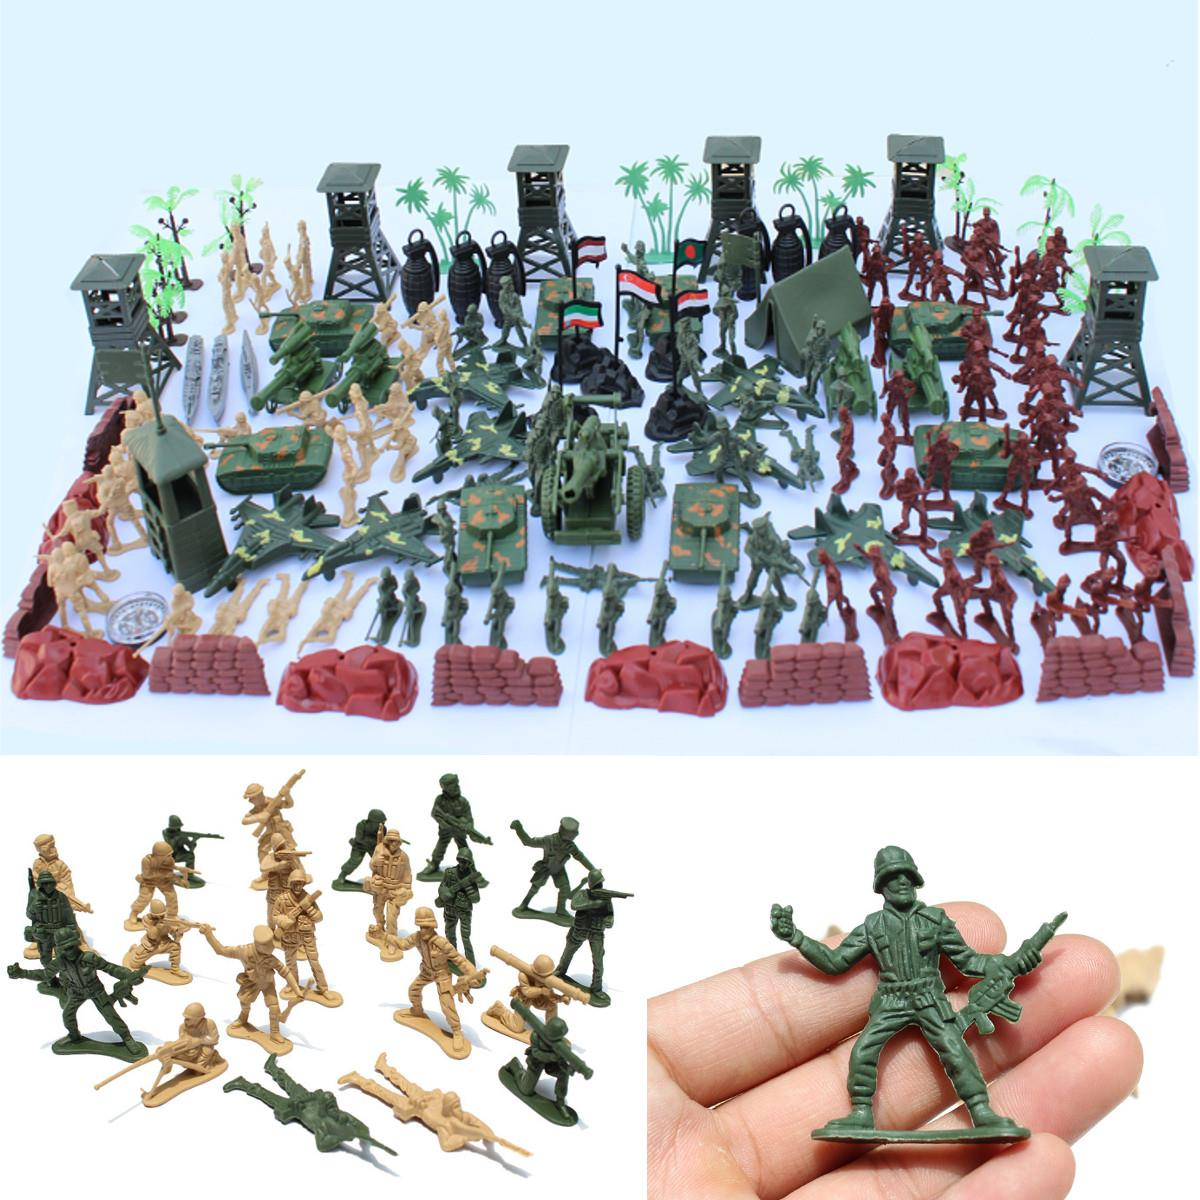 170pcs/set Military Plastic Model Toy Soldier Army Men Figures & Accessories Playset Kit Decor Gift Model Toys For Children multi 12 1 6 accessories uniform action figure model toy military army combat game toys soldier set with retail box child gift